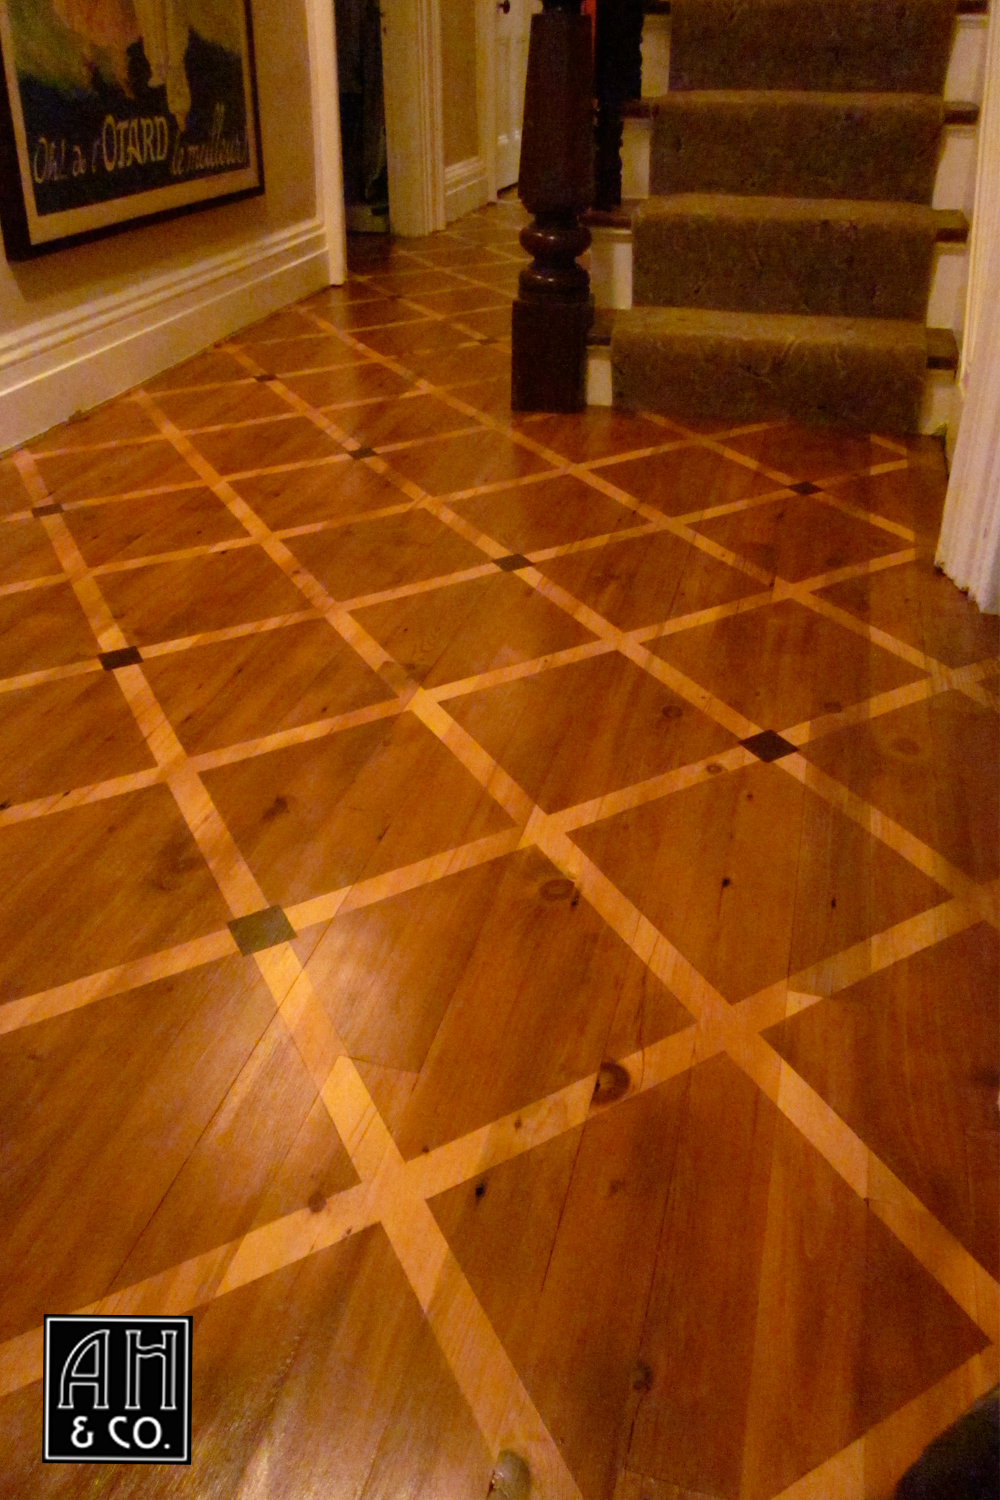 HISTORICAL MULTI COLORED DIAMOND PATTERN WOOD FLOOR